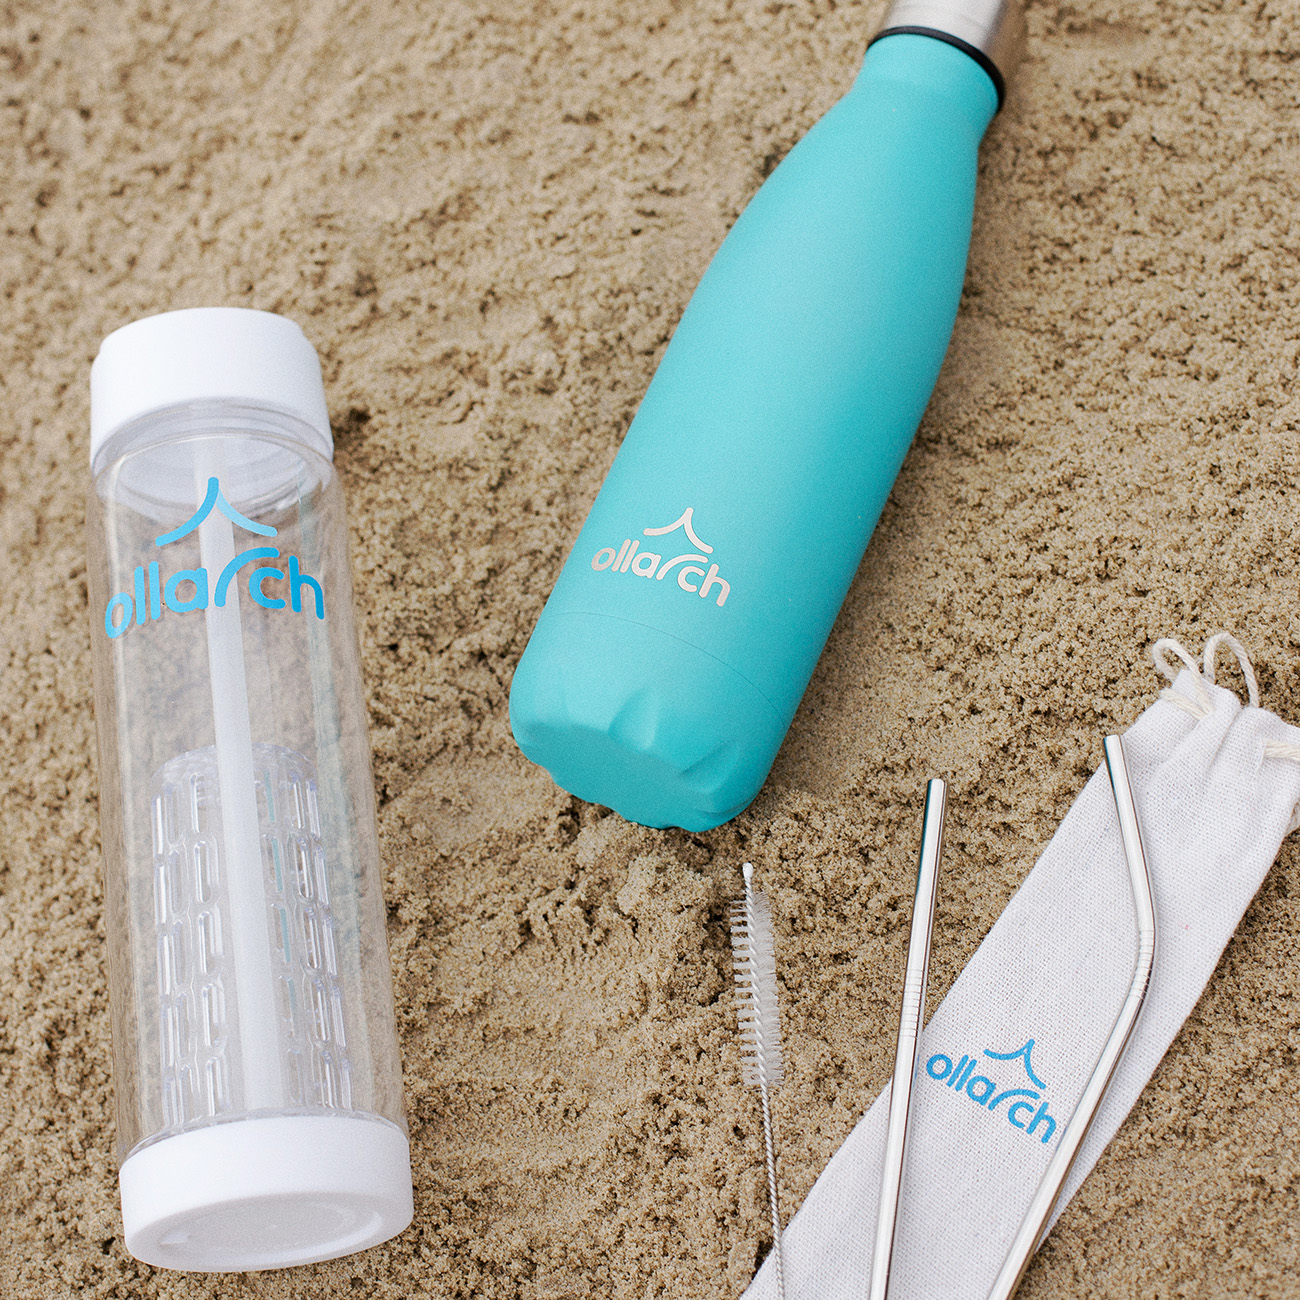 Ollarch reusable drinking product range on Sunny Sands Beach Folkestone Kent